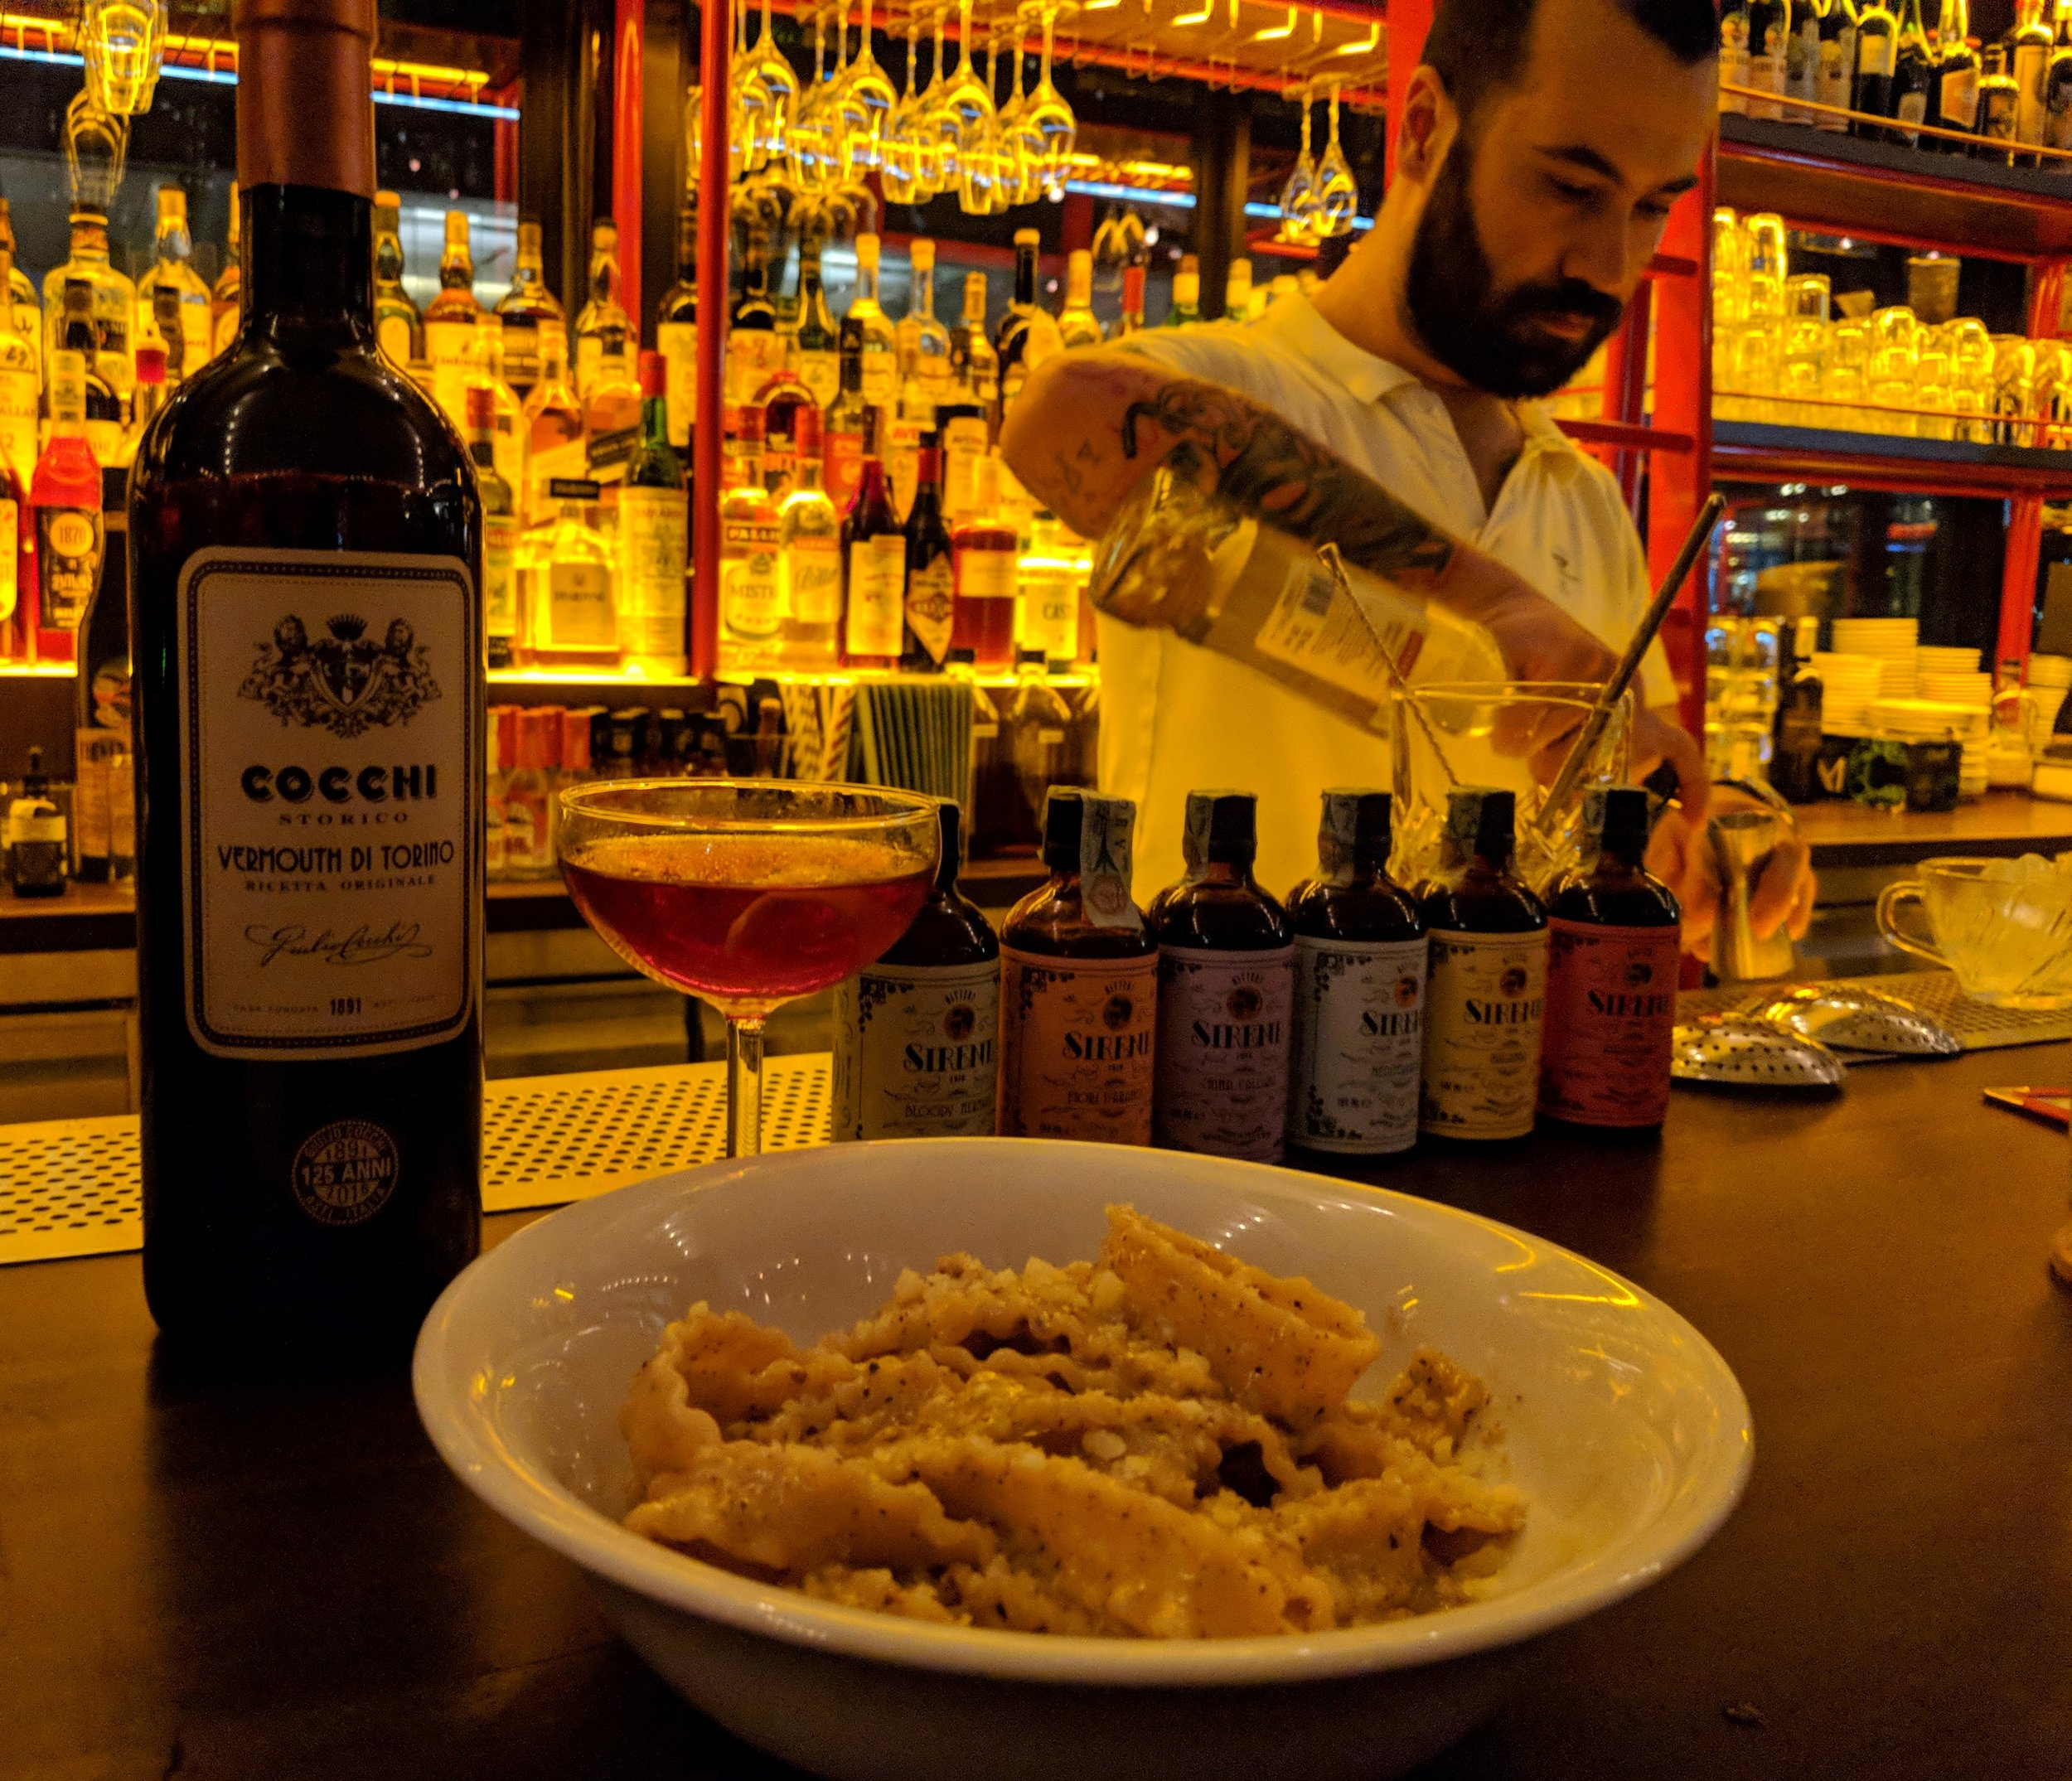 Diego uses Cocchi sweet vermouth of Torino, Liquore delle Sirene bitters and Luxardo gin in making a cocktail at Caffe Fernet